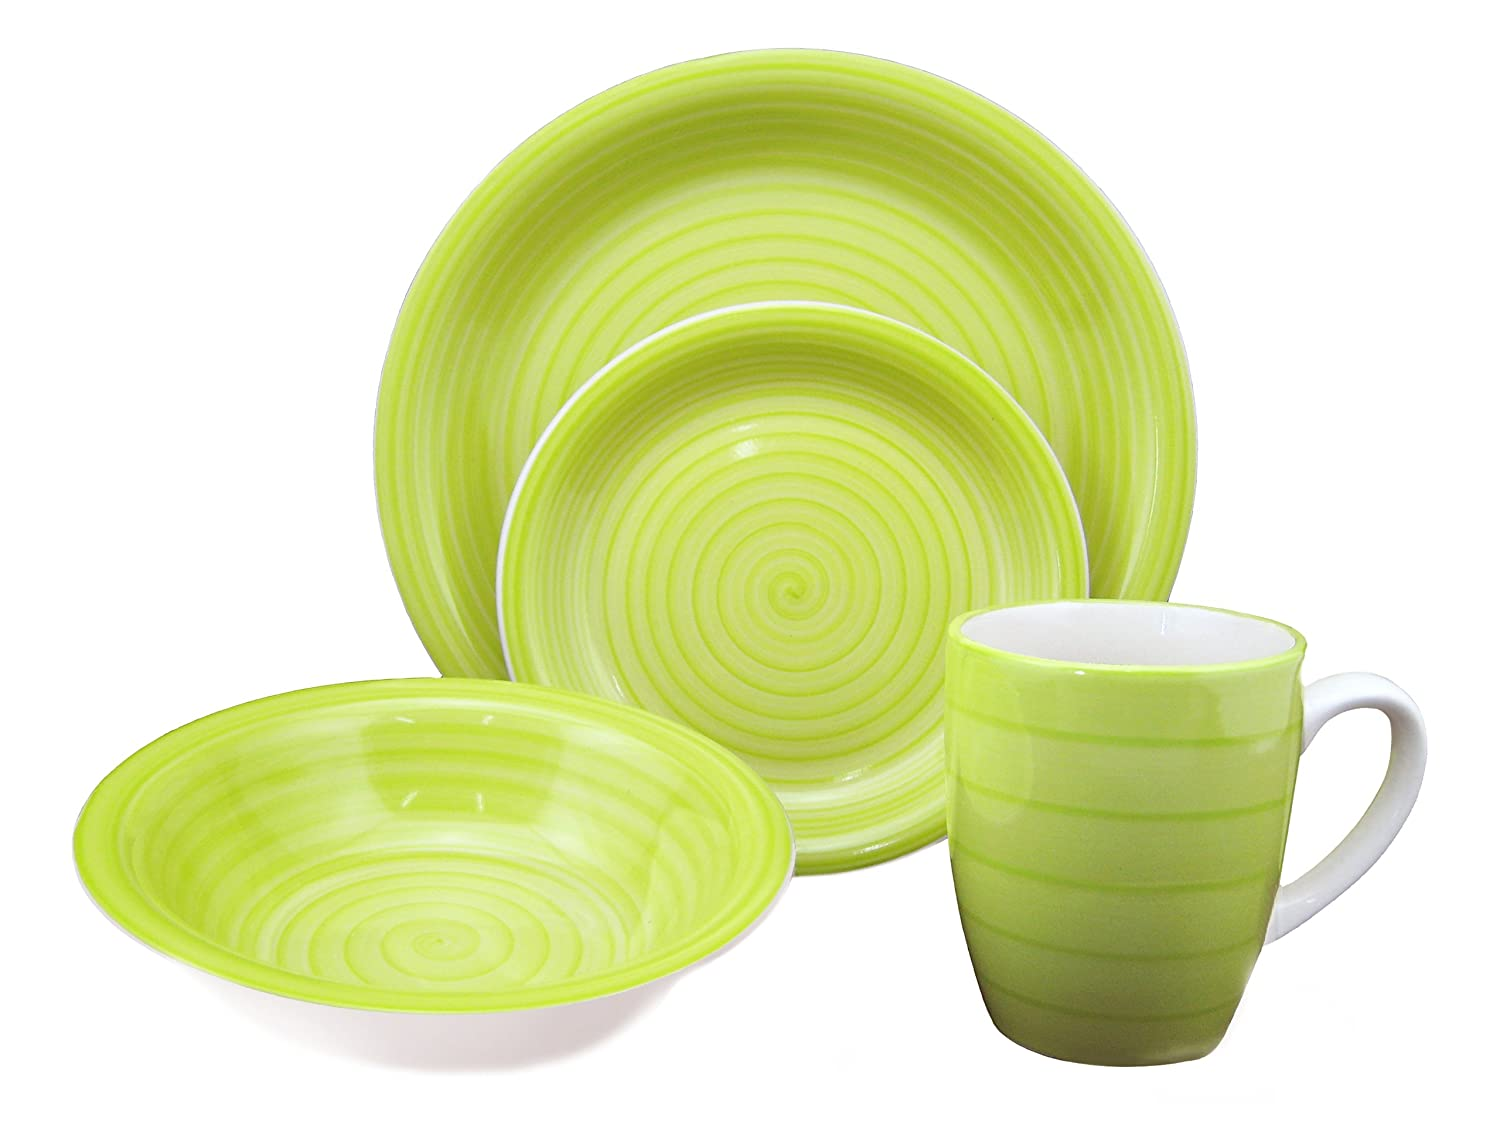 Amazon.com | Lorren Home Trends 16-Piece Stoneware Dinnerware Set Green Dinnerware Sets  sc 1 st  Amazon.com & Amazon.com | Lorren Home Trends 16-Piece Stoneware Dinnerware Set ...